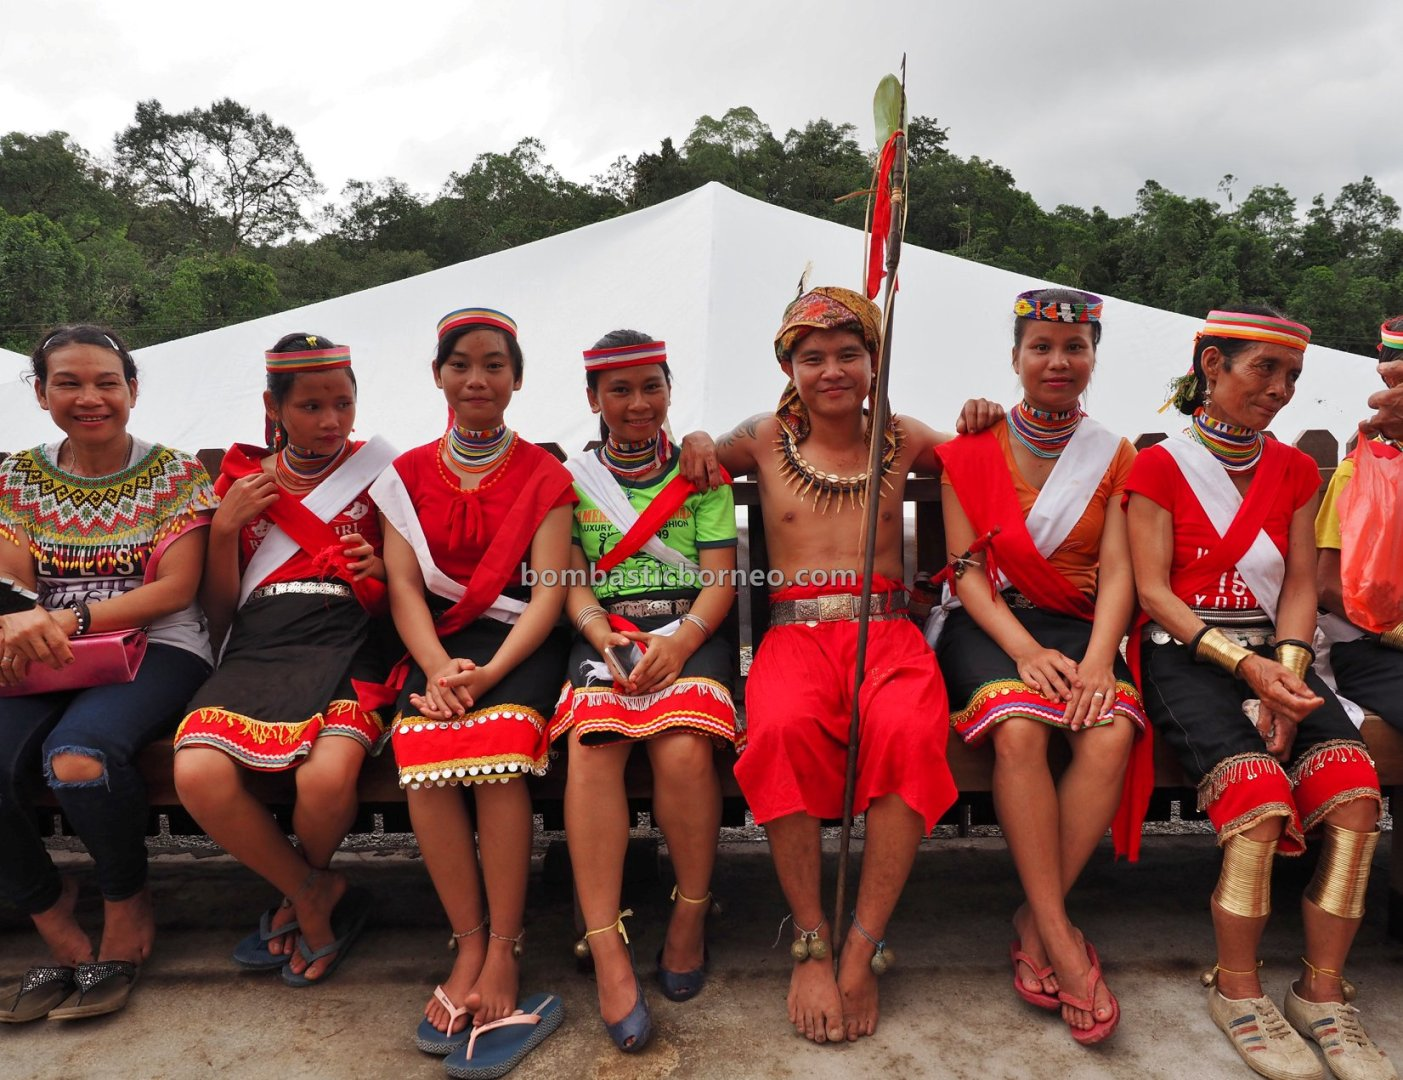 Kampung Gumbang, Bidayuh village, paddy harvest festival, authentic, indigenous, Kuching, Sarawak, Malaysia, copper ring lady, Ethnic, tribe, tourist attraction, travel guide, 婆罗洲比达友族文化, 砂拉越传统丰收节日, Sungkung Anep